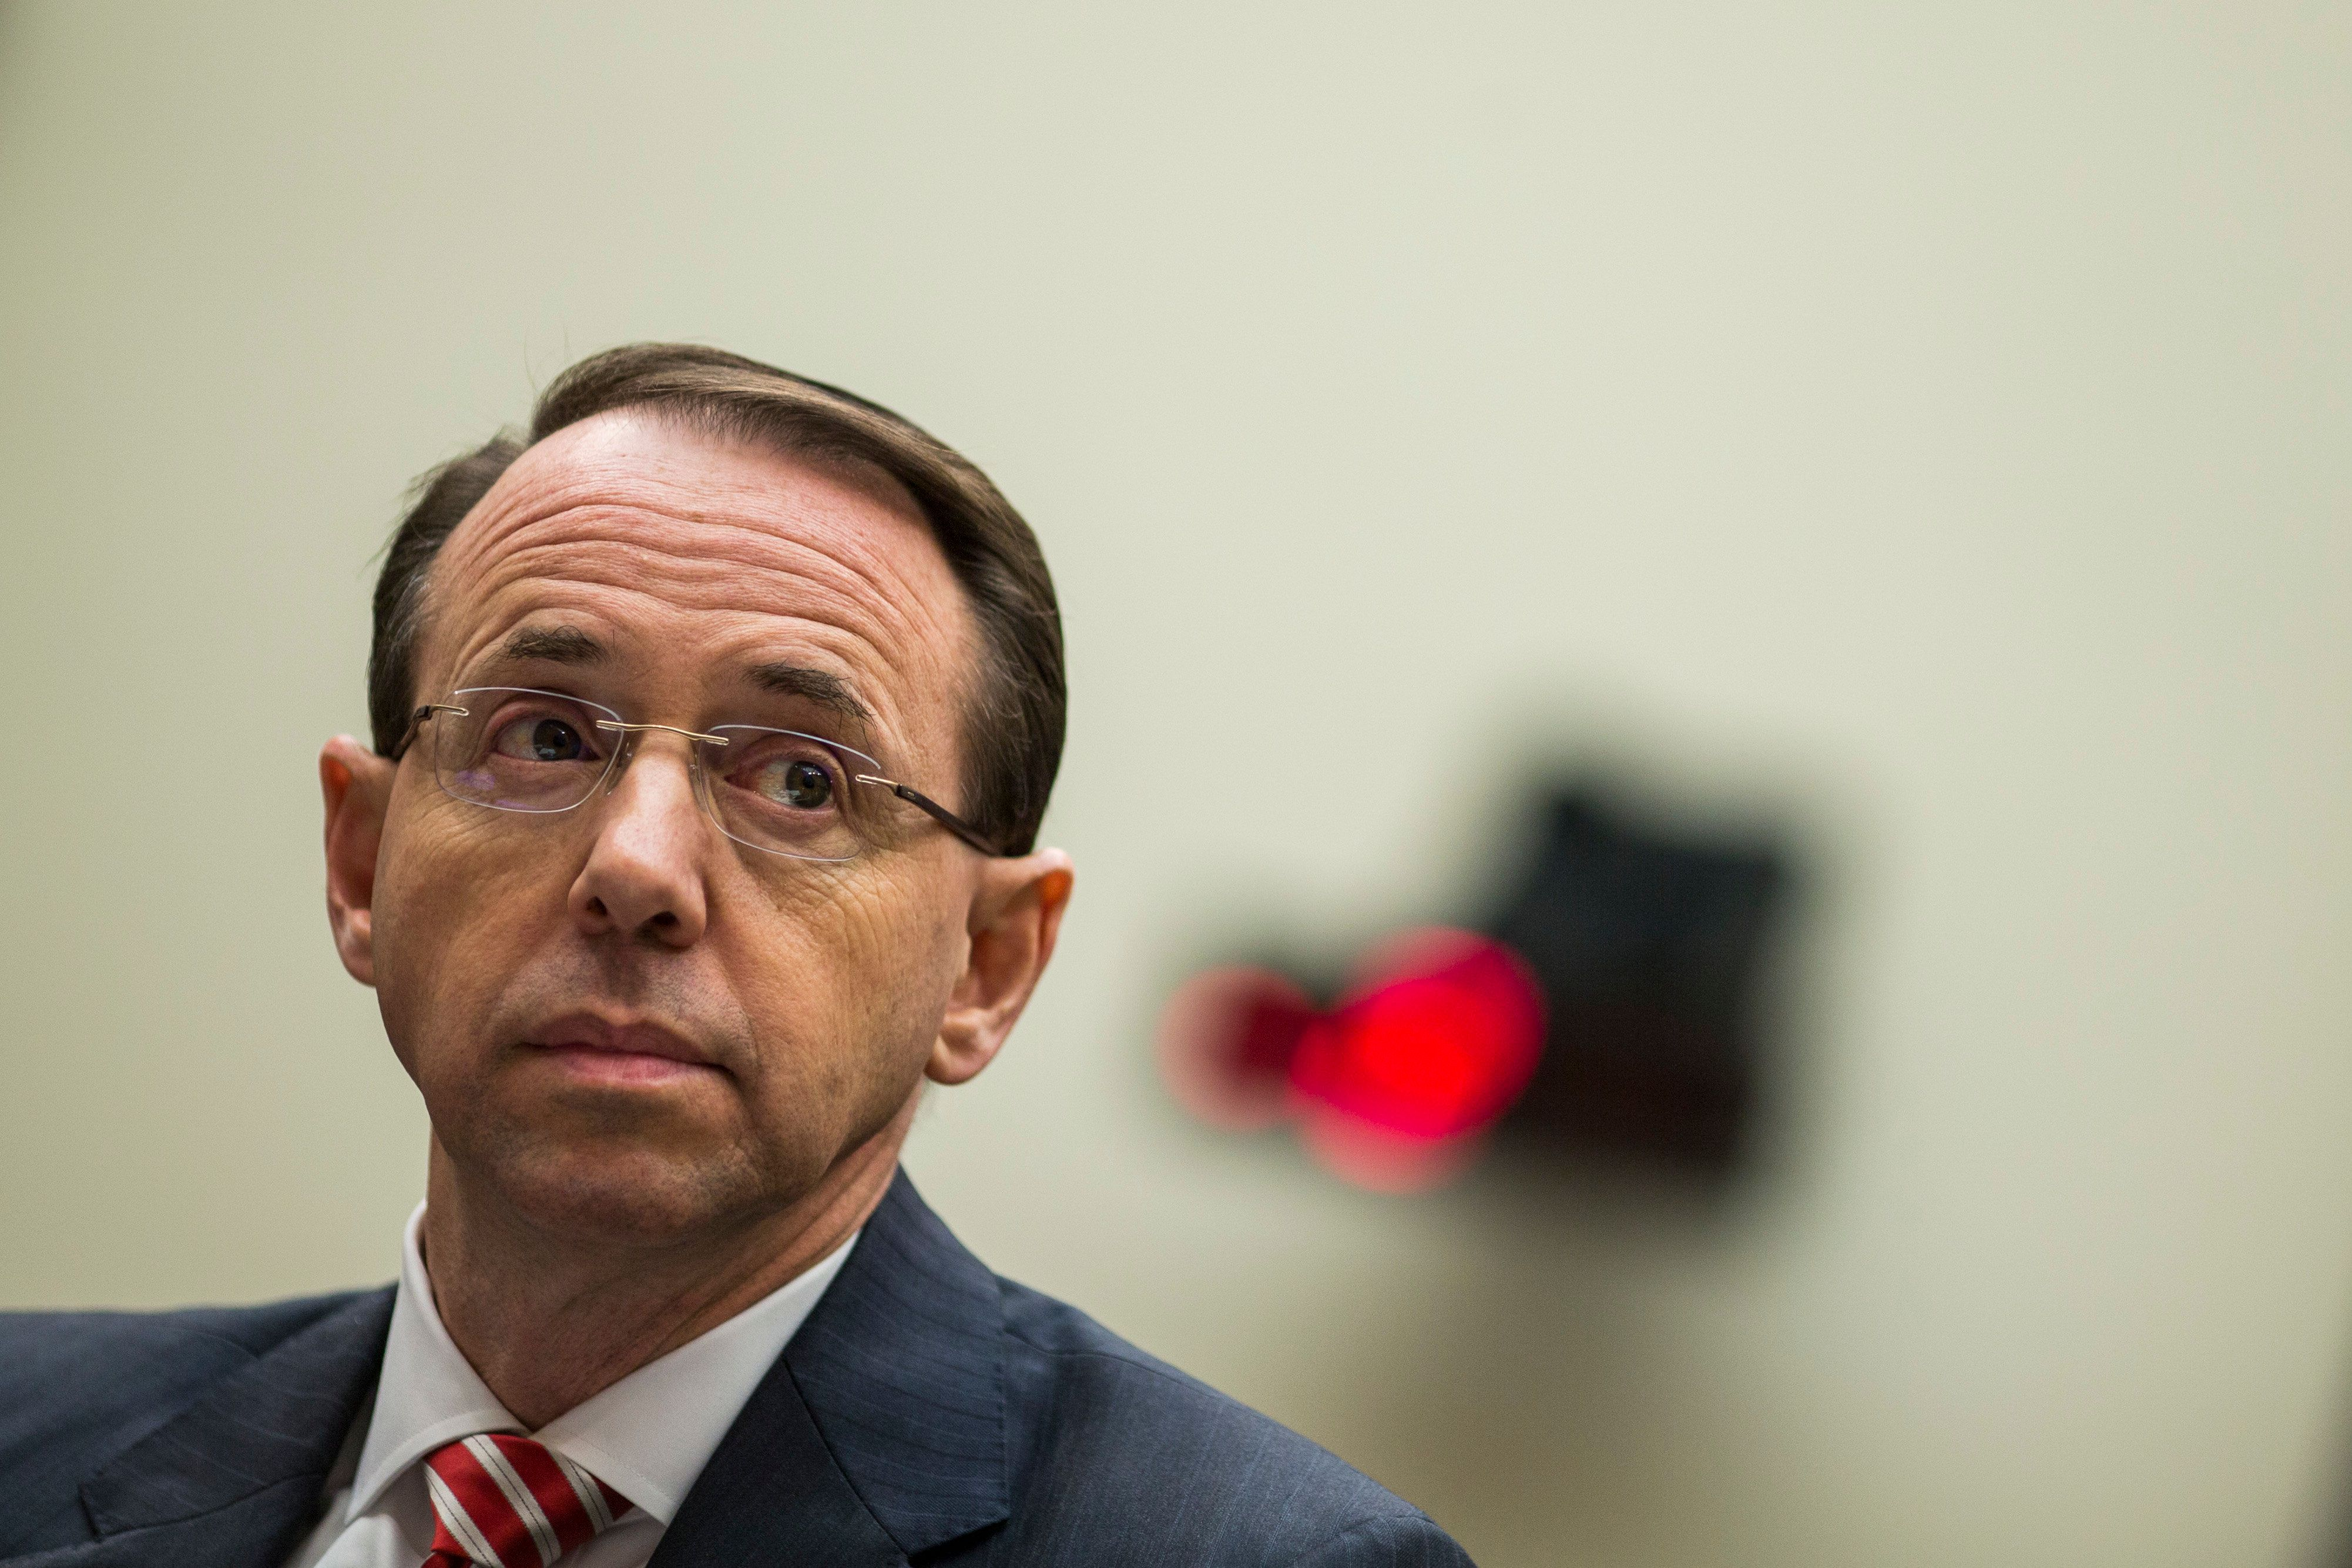 Deputy Attorney General Rod Rosenstein was put in charge of the Russia investigation after Attorney General Jeff Sessions rec